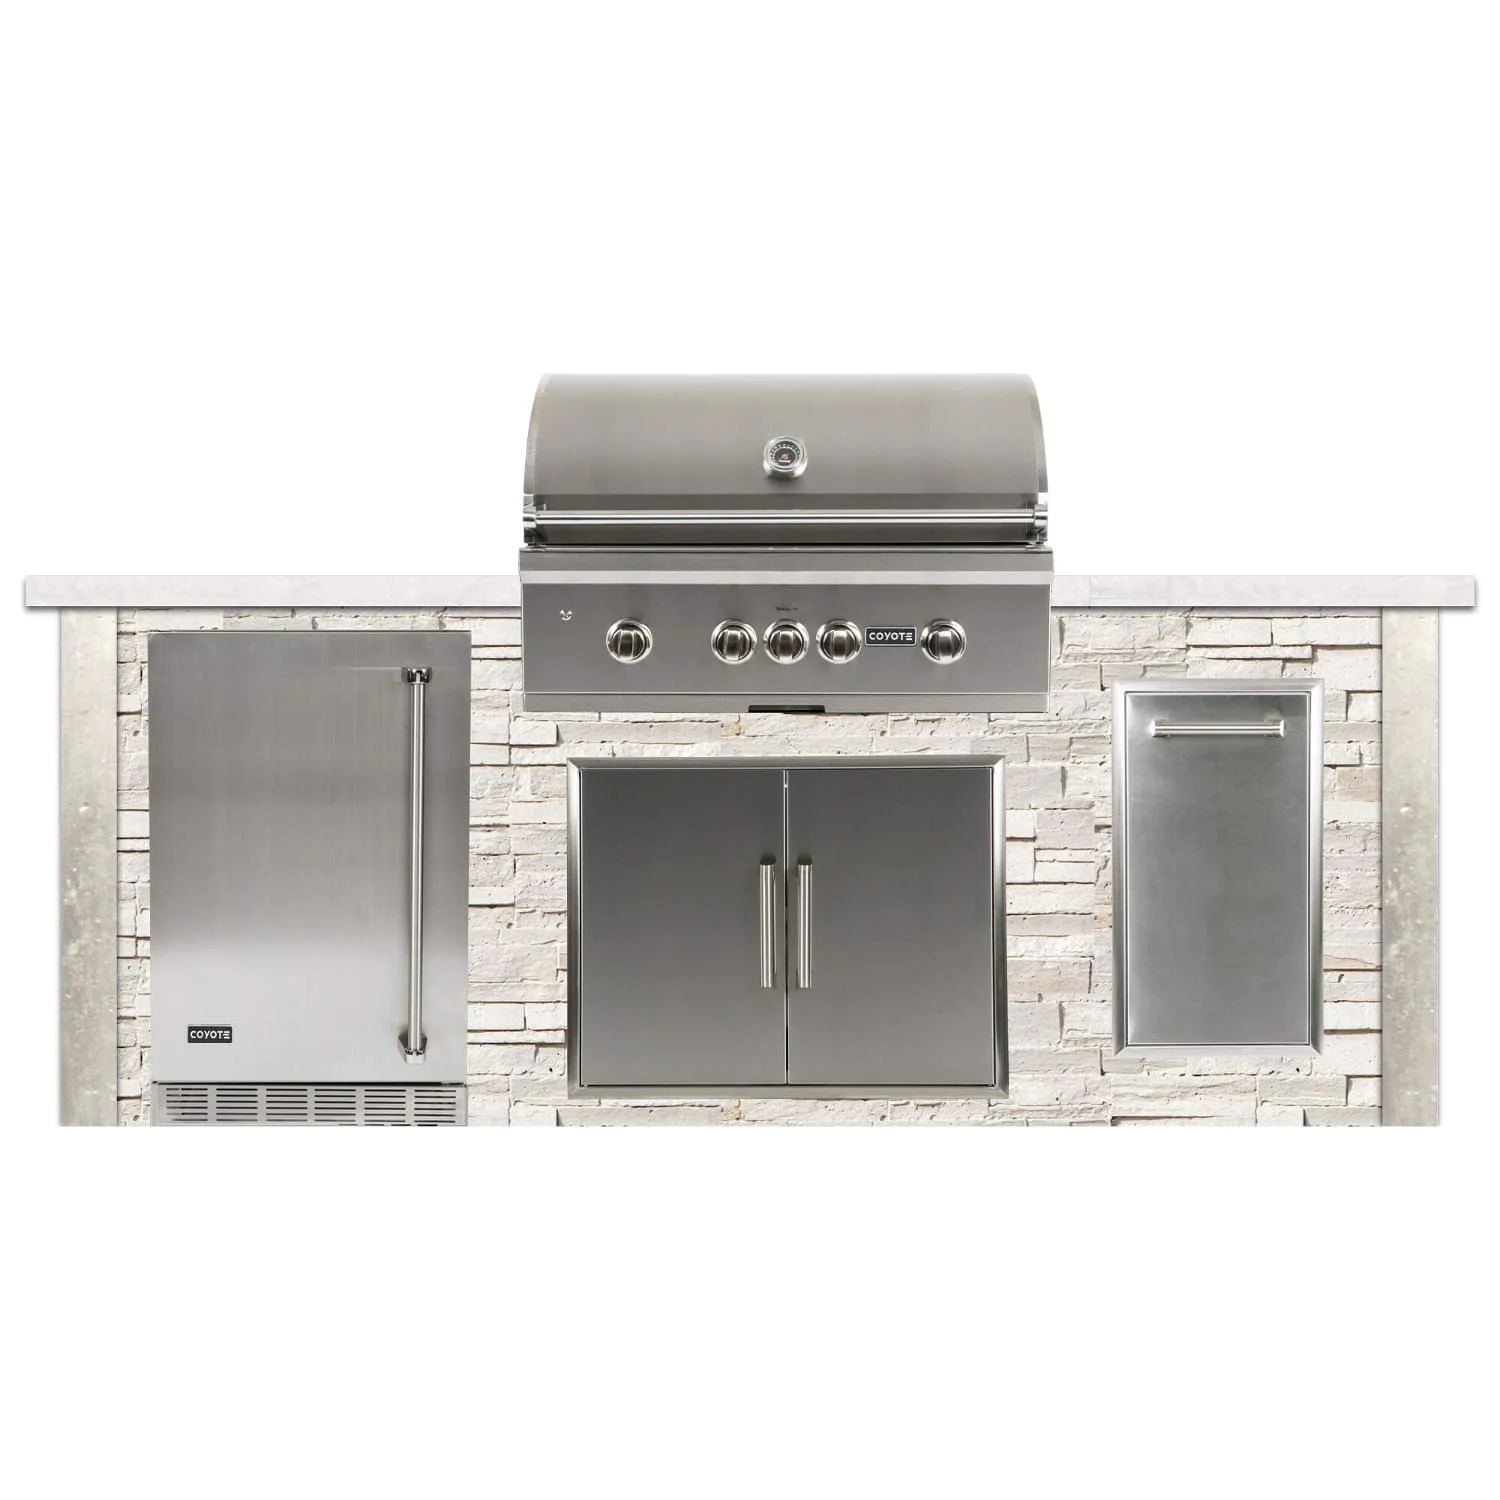 Coyote Ready-To-Assemble 8 Ft Outdoor Kitchen Island With 36-Inch S-Series Natural Gas Grill (Ships As Propane With Conversion Fittings) - Stacked Stone/Modern White - RTAC-G8-SW-C2SL36NG